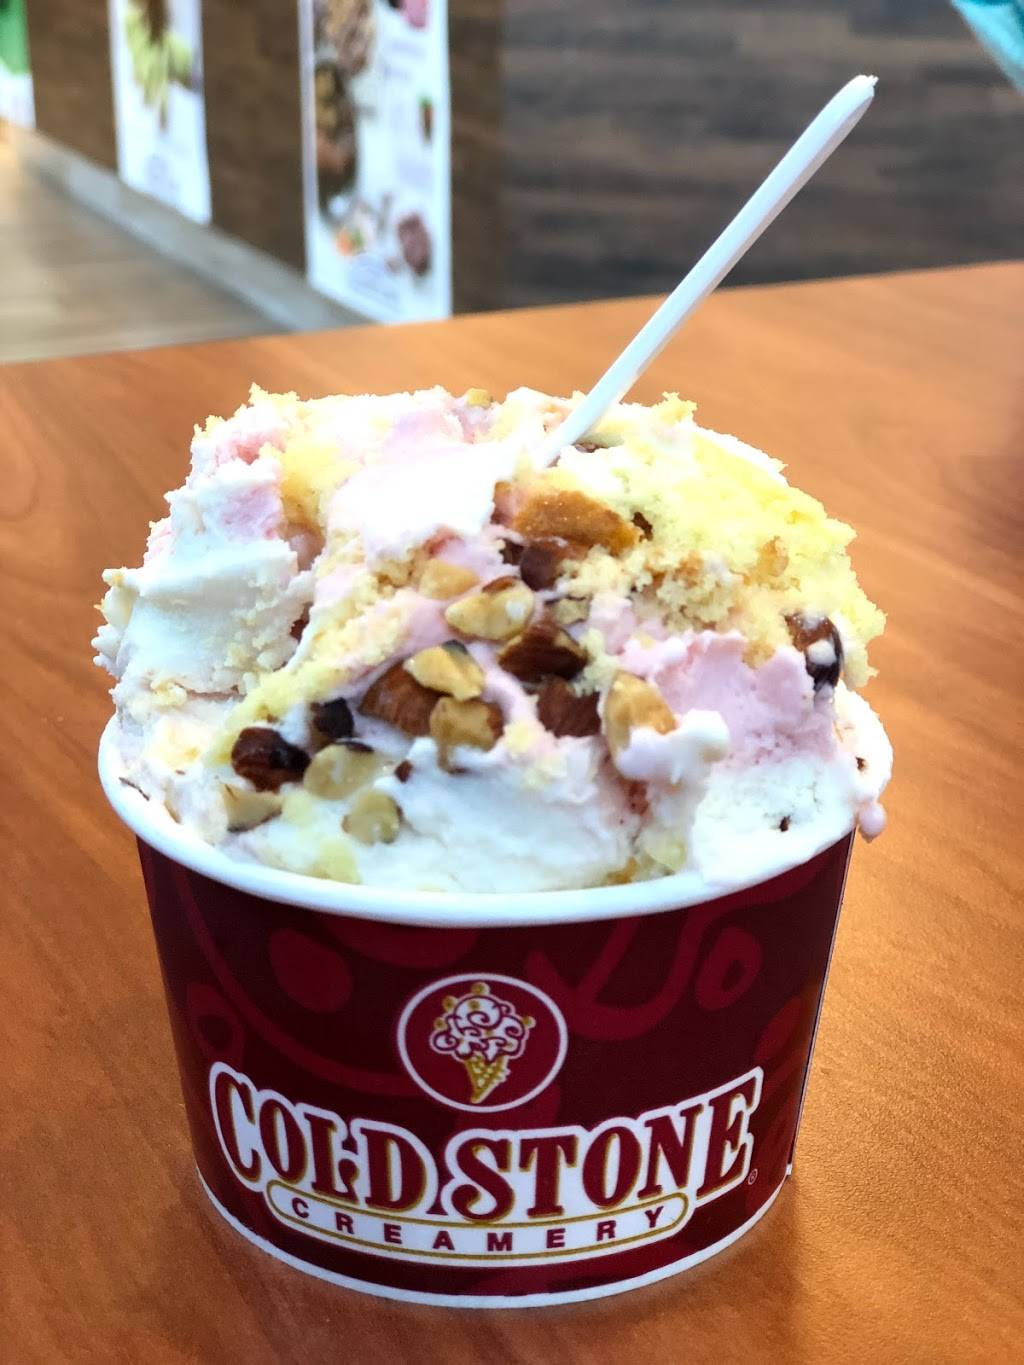 Cold Stone Creamery   bakery   10101 Twin Rivers Road C2, At the Columbia Mall, #102, Columbia, MD 21044, USA   4435455041 OR +1 443-545-5041